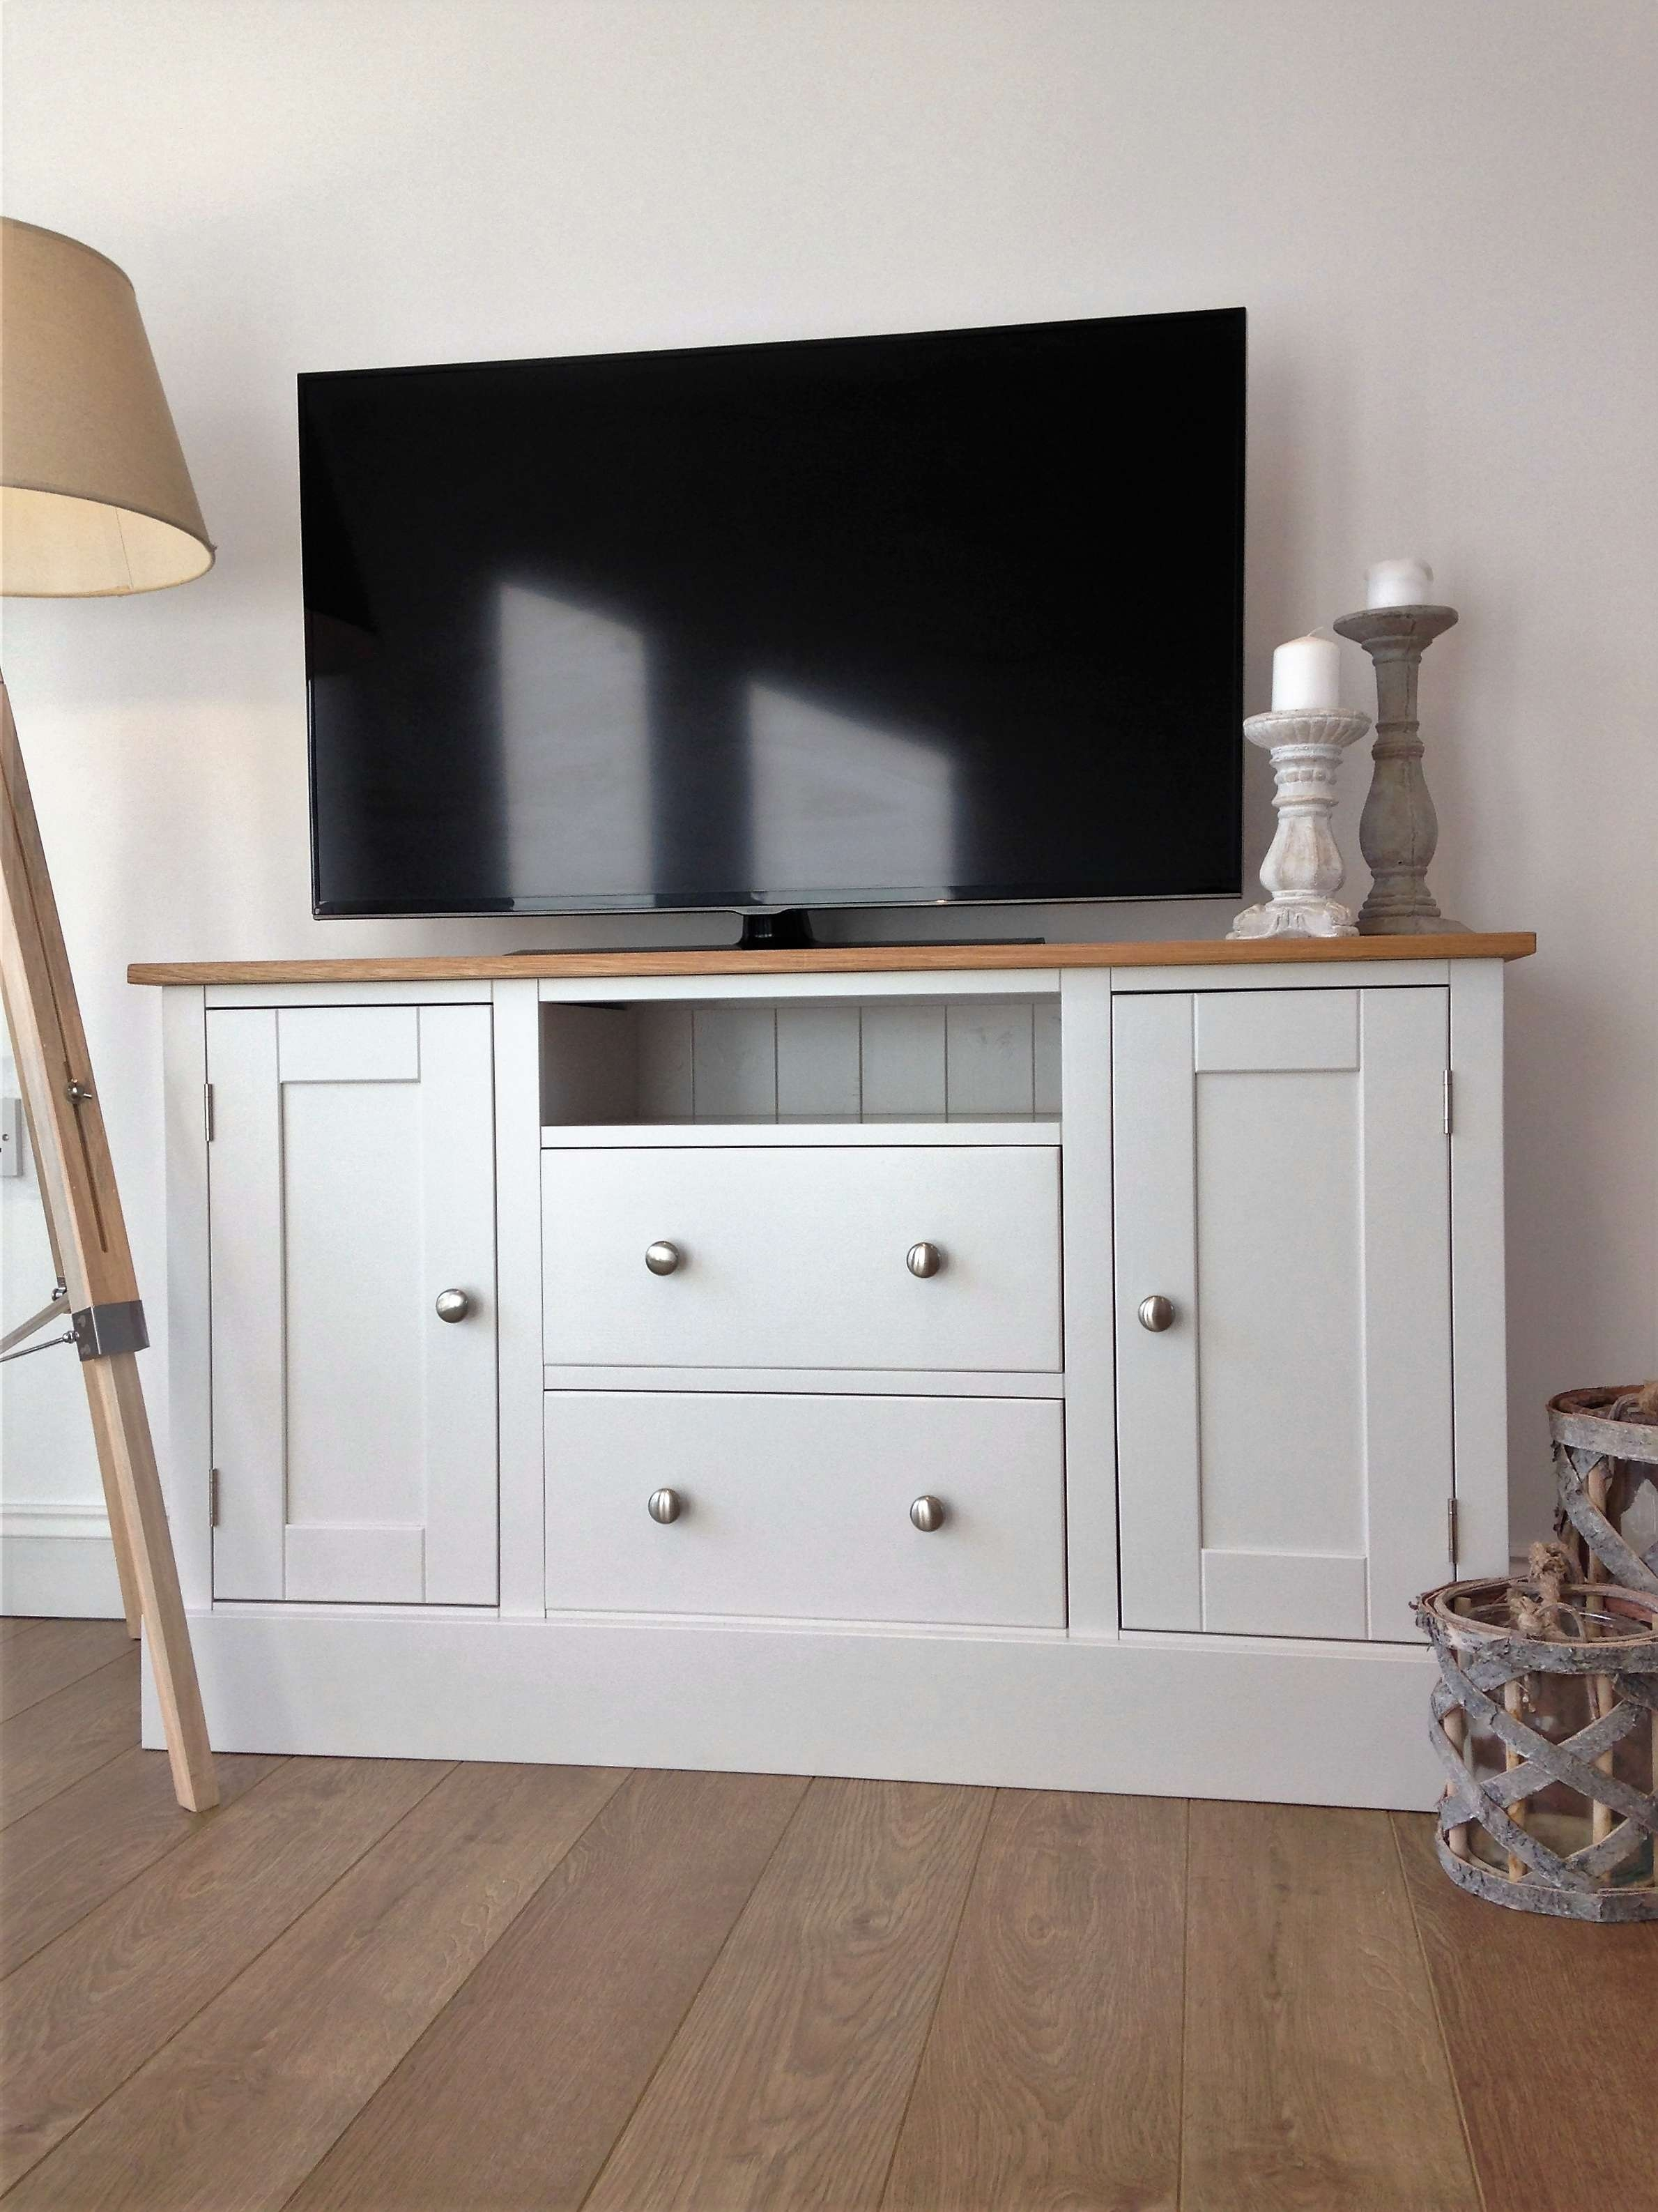 4ft Painted Tv Cabinet Made Of Solid Oak & Pine – Nest At Number 20 With White Painted Tv Cabinets (View 8 of 20)